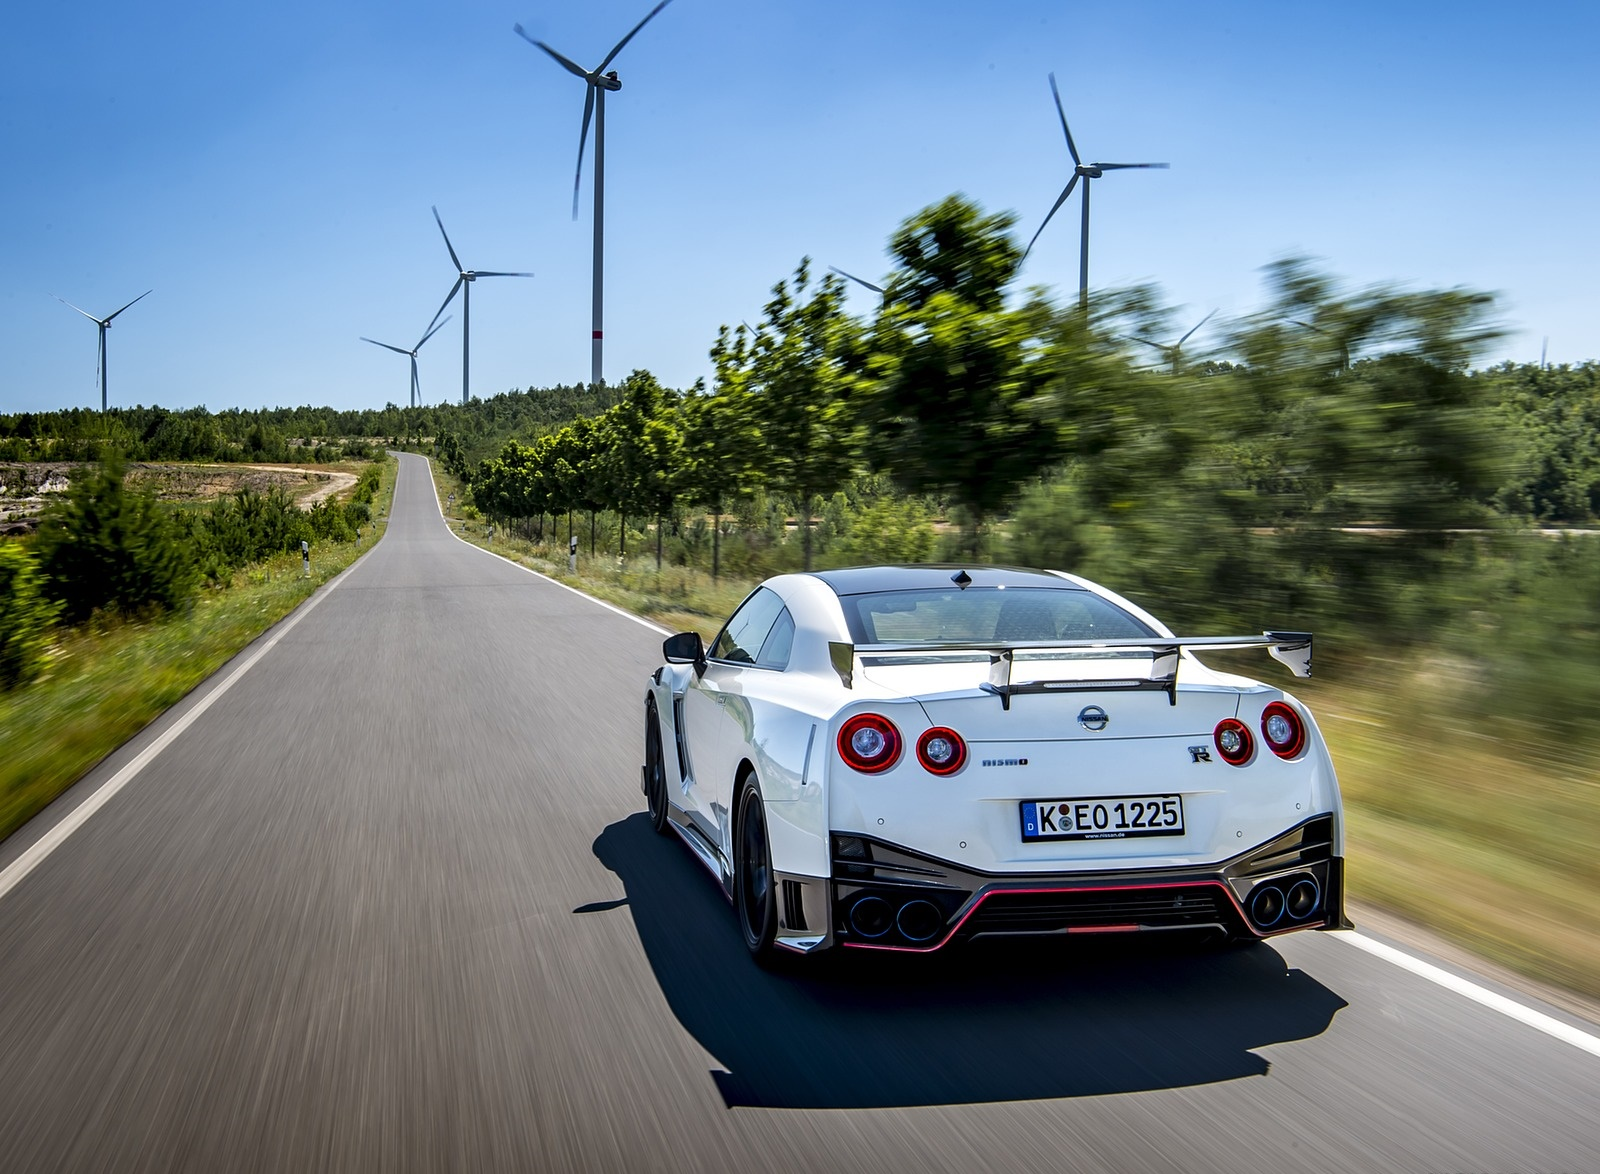 2020 Nissan GT-R NISMO Rear Wallpapers #9 of 90